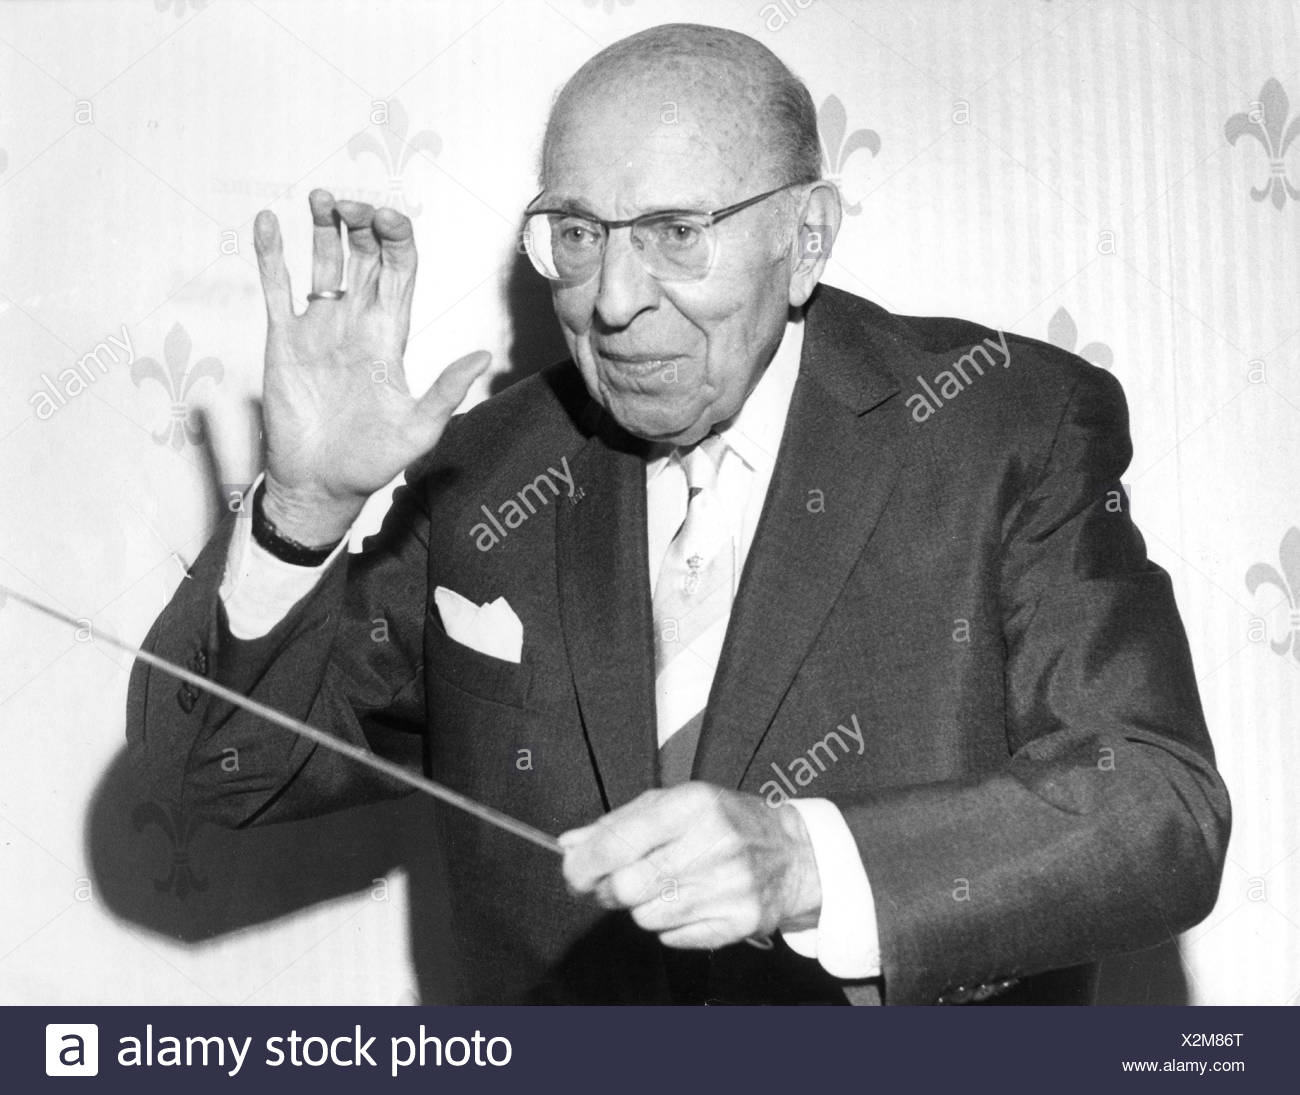 Stolz, Robert, 25.8.1880 - 27. 6.1975, Austrian composer, conducting, 1960s, stick, baton, conductor, , Additional-Rights-Clearances-NA - Stock Image